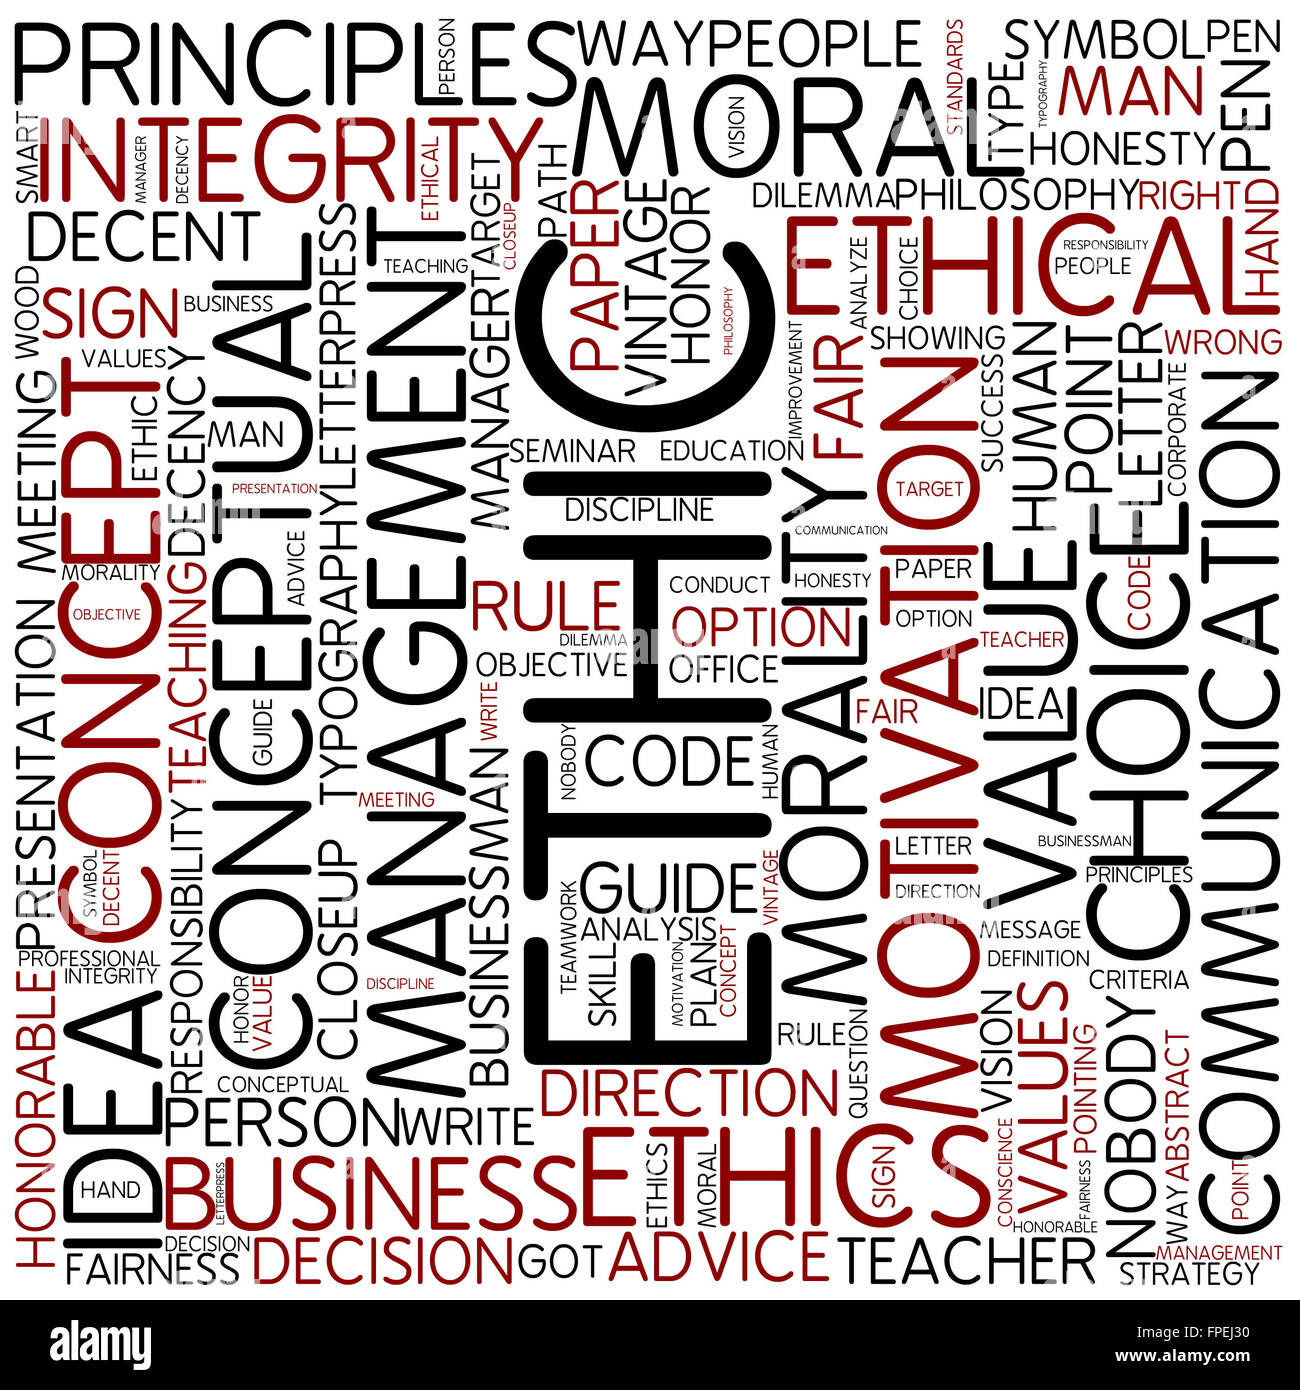 ethic concept word business ethics text idea - Stock Image